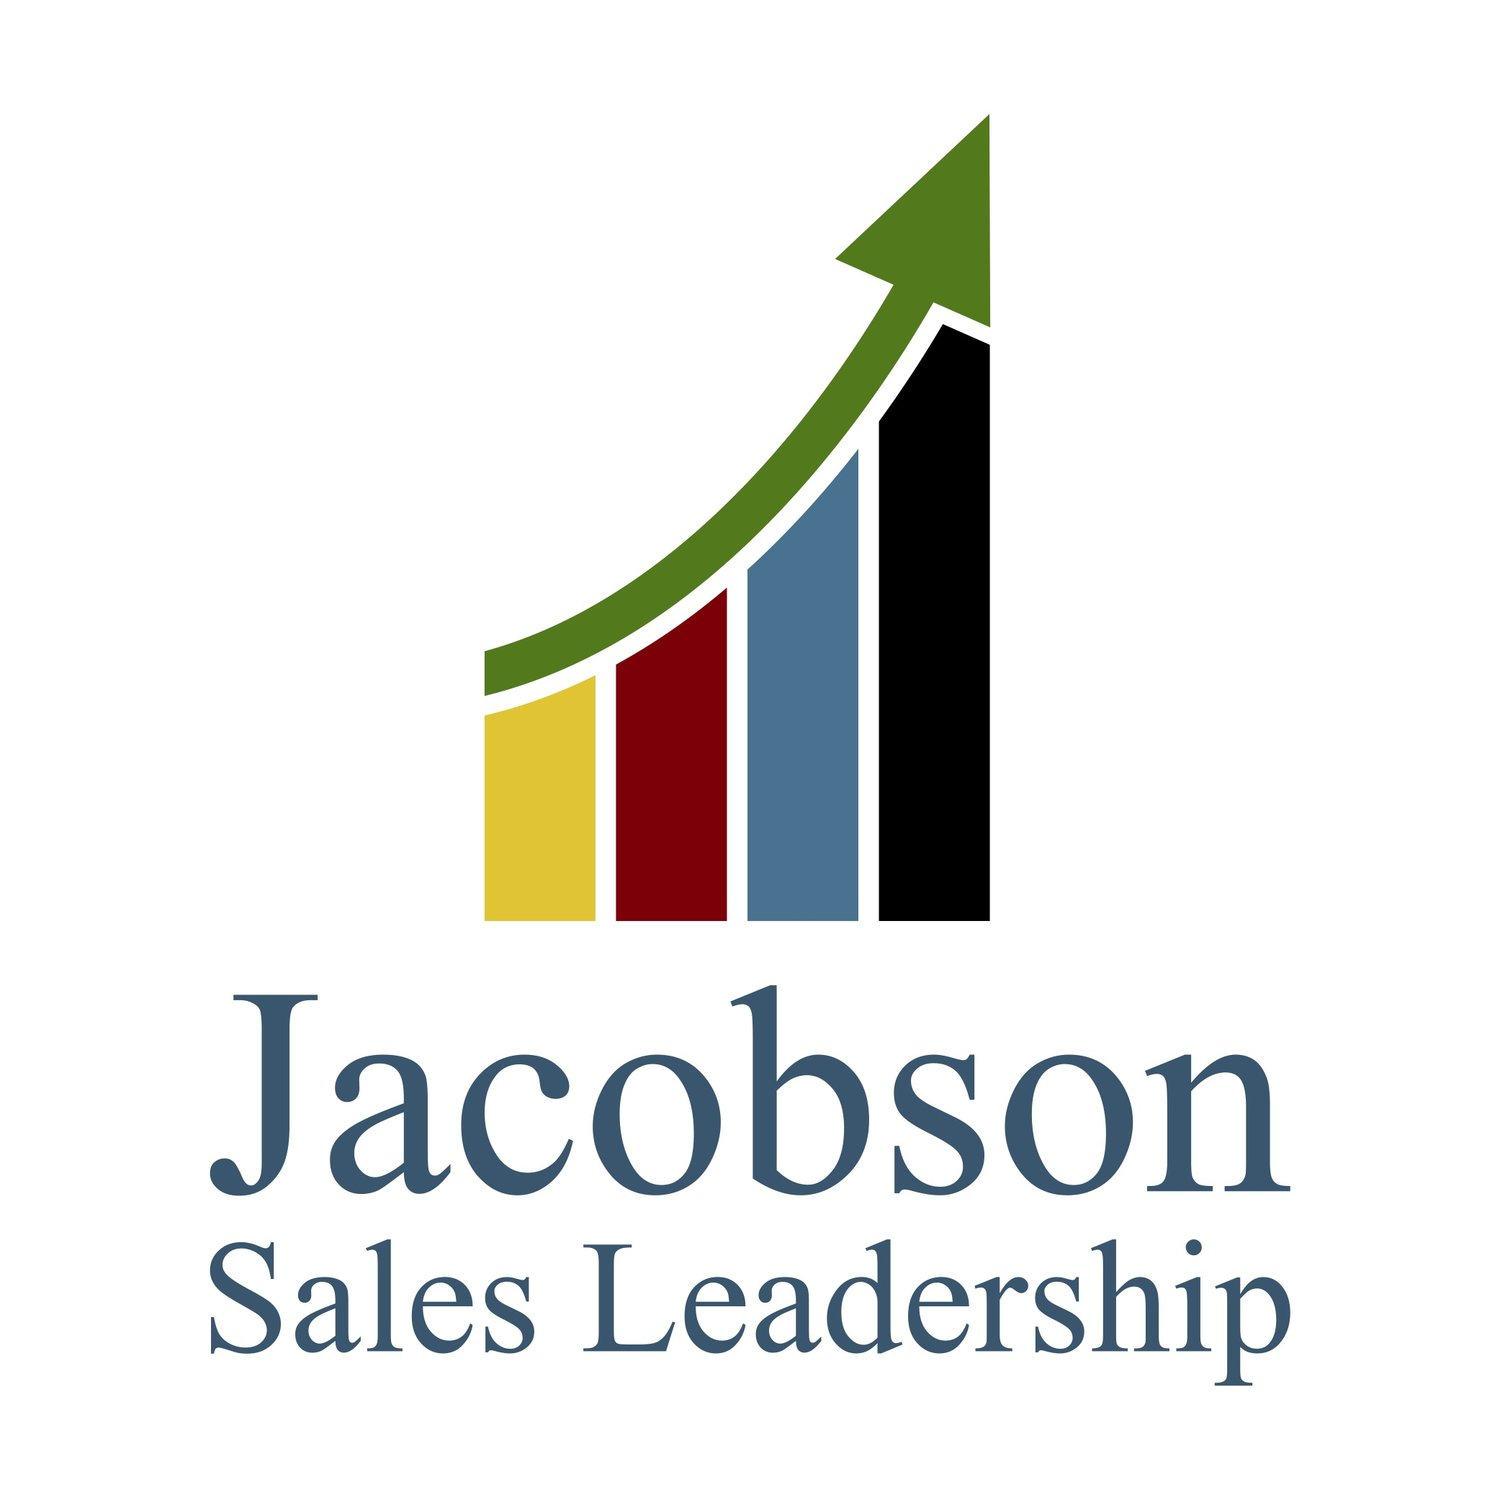 Jacobson Sales Leadership - Sales Team Growth & Development Expert